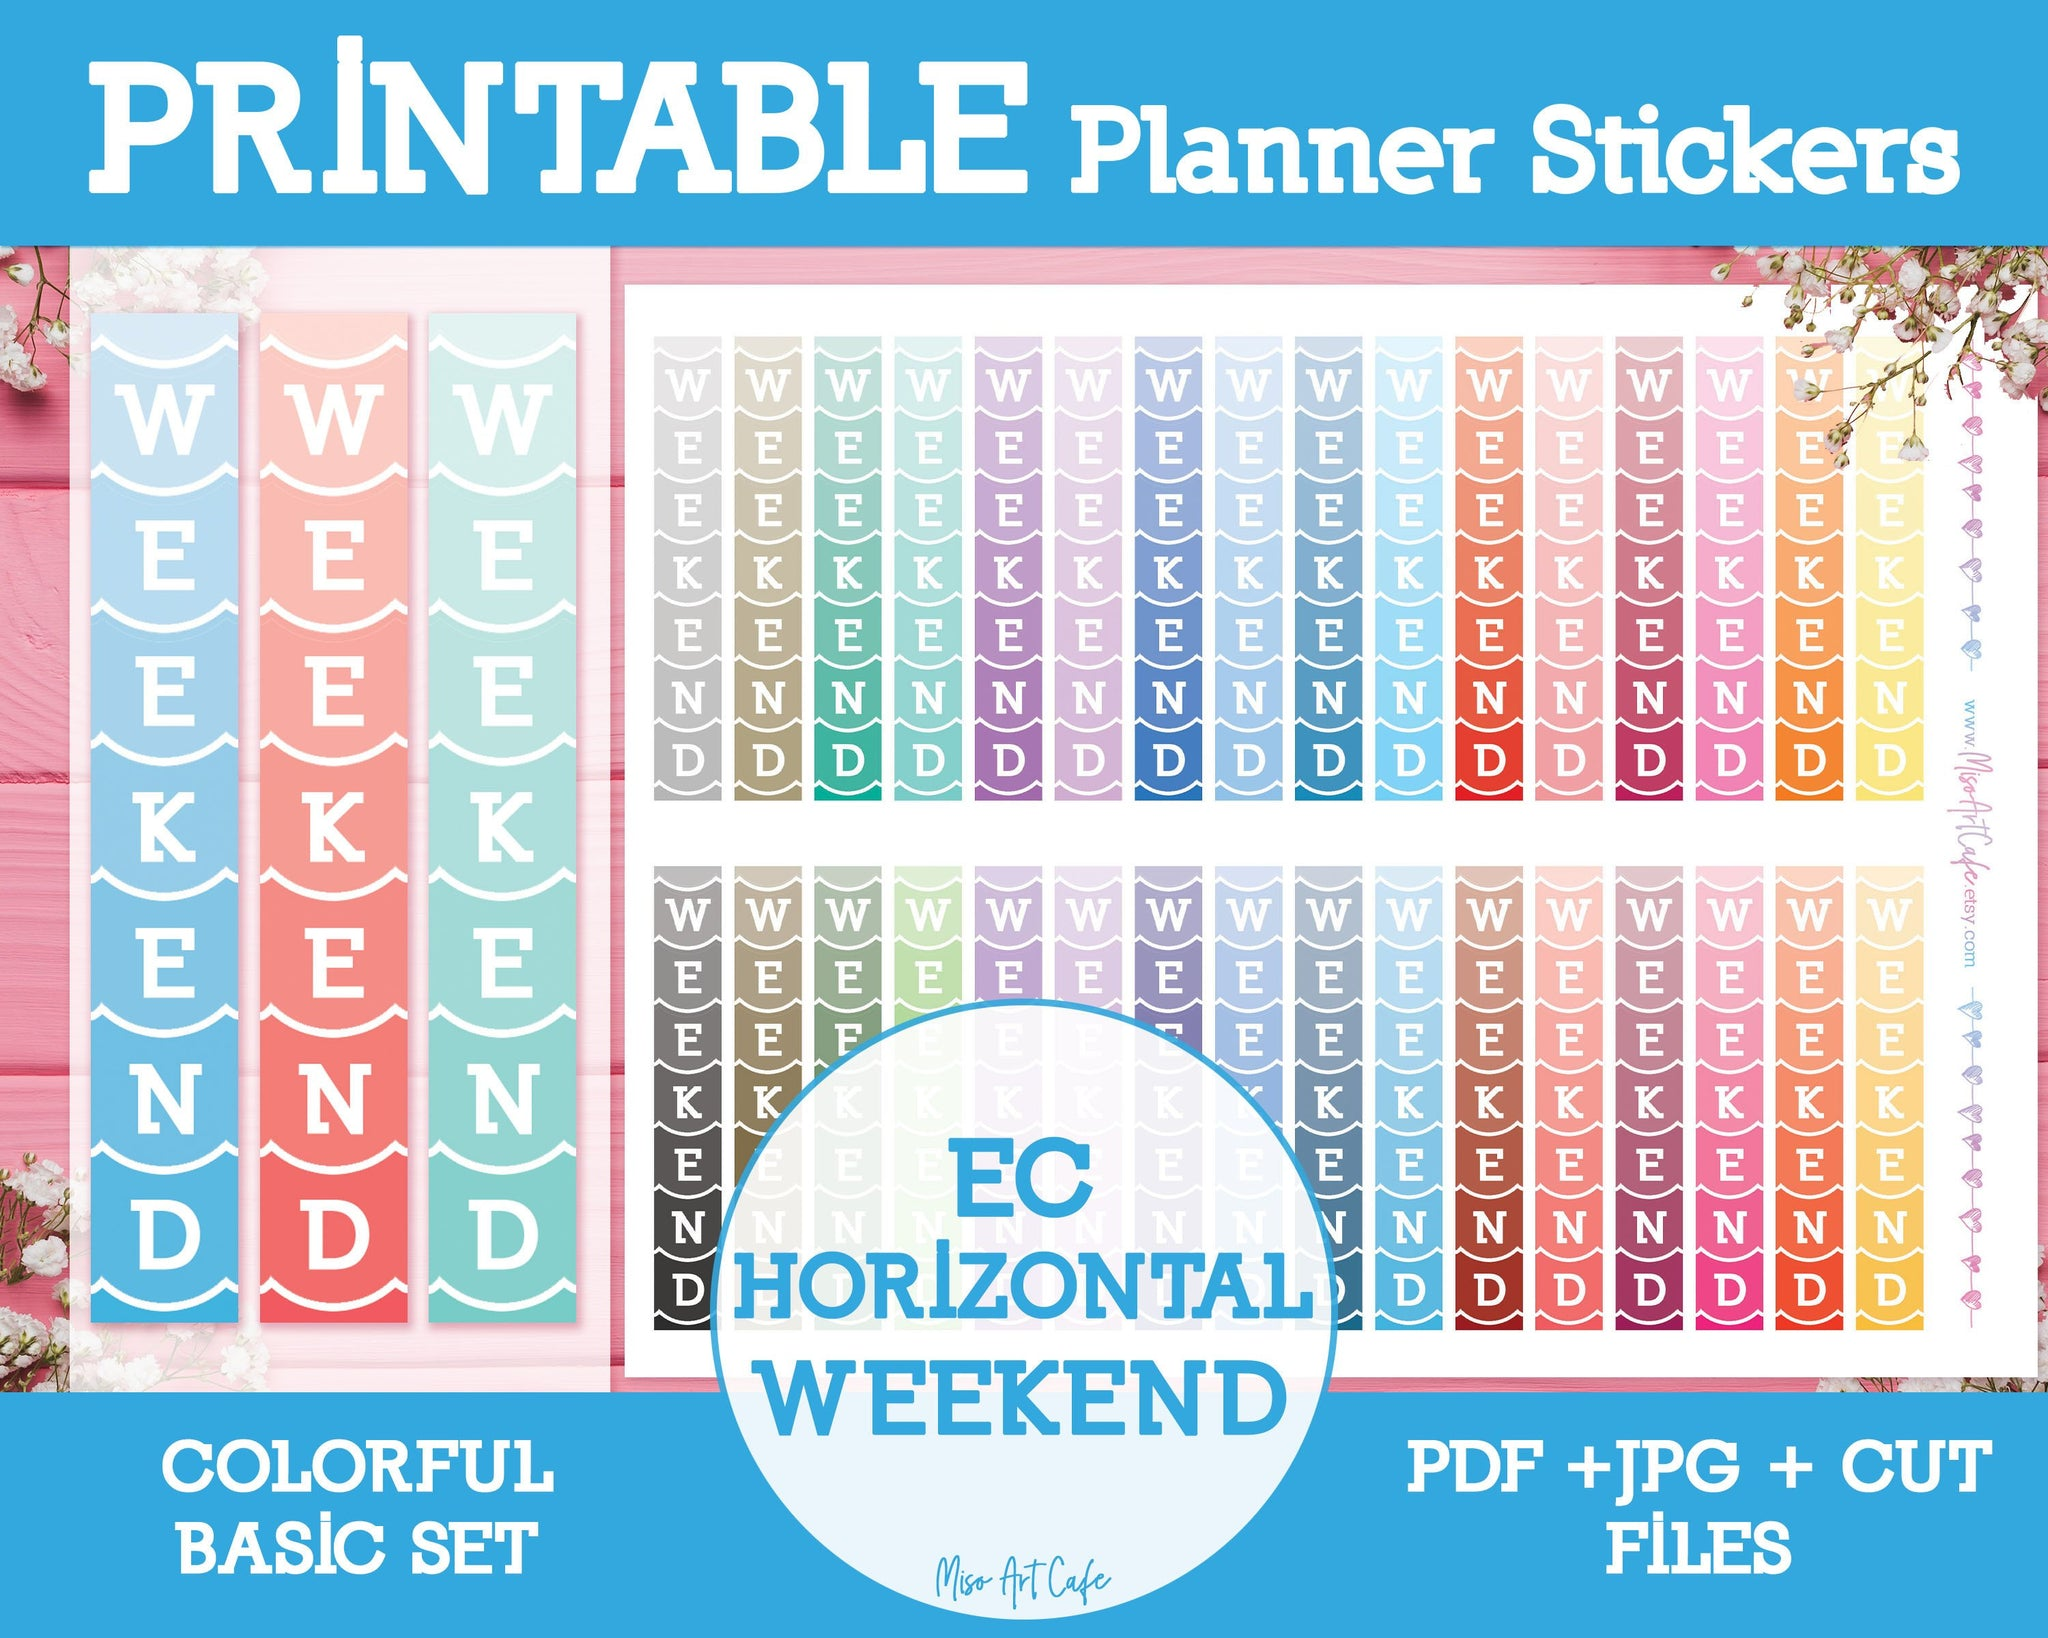 Printable EC Horizontal Weekend Banners - Colorful Basic Planner Stickers - Miso Art Cafe